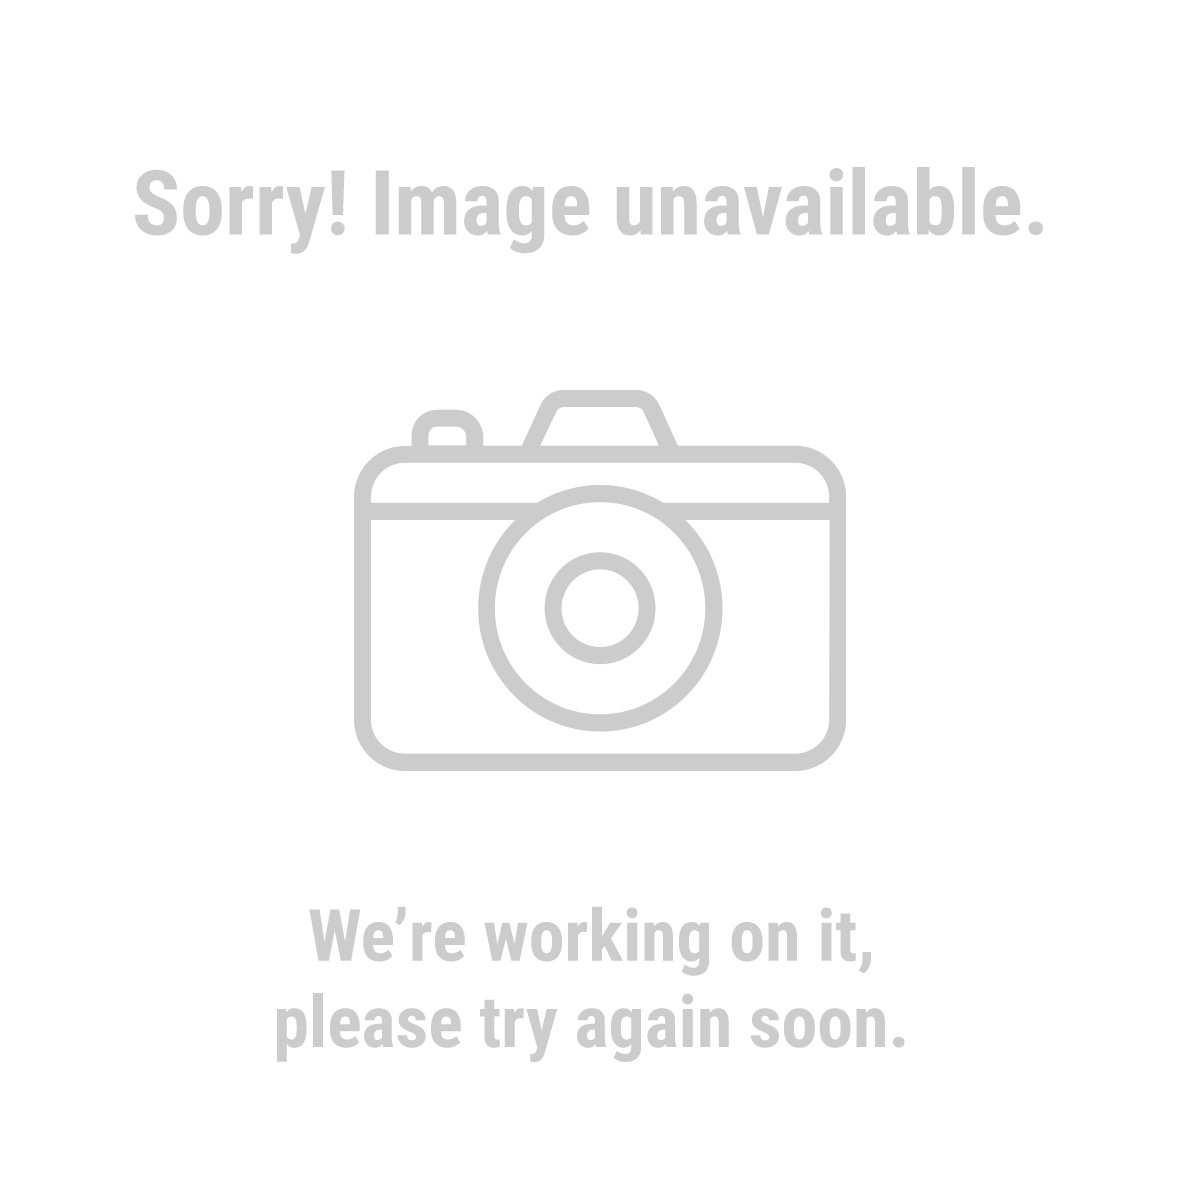 Haul-Master® 67646 17 Ft. Type 1A Multi-Task Ladder